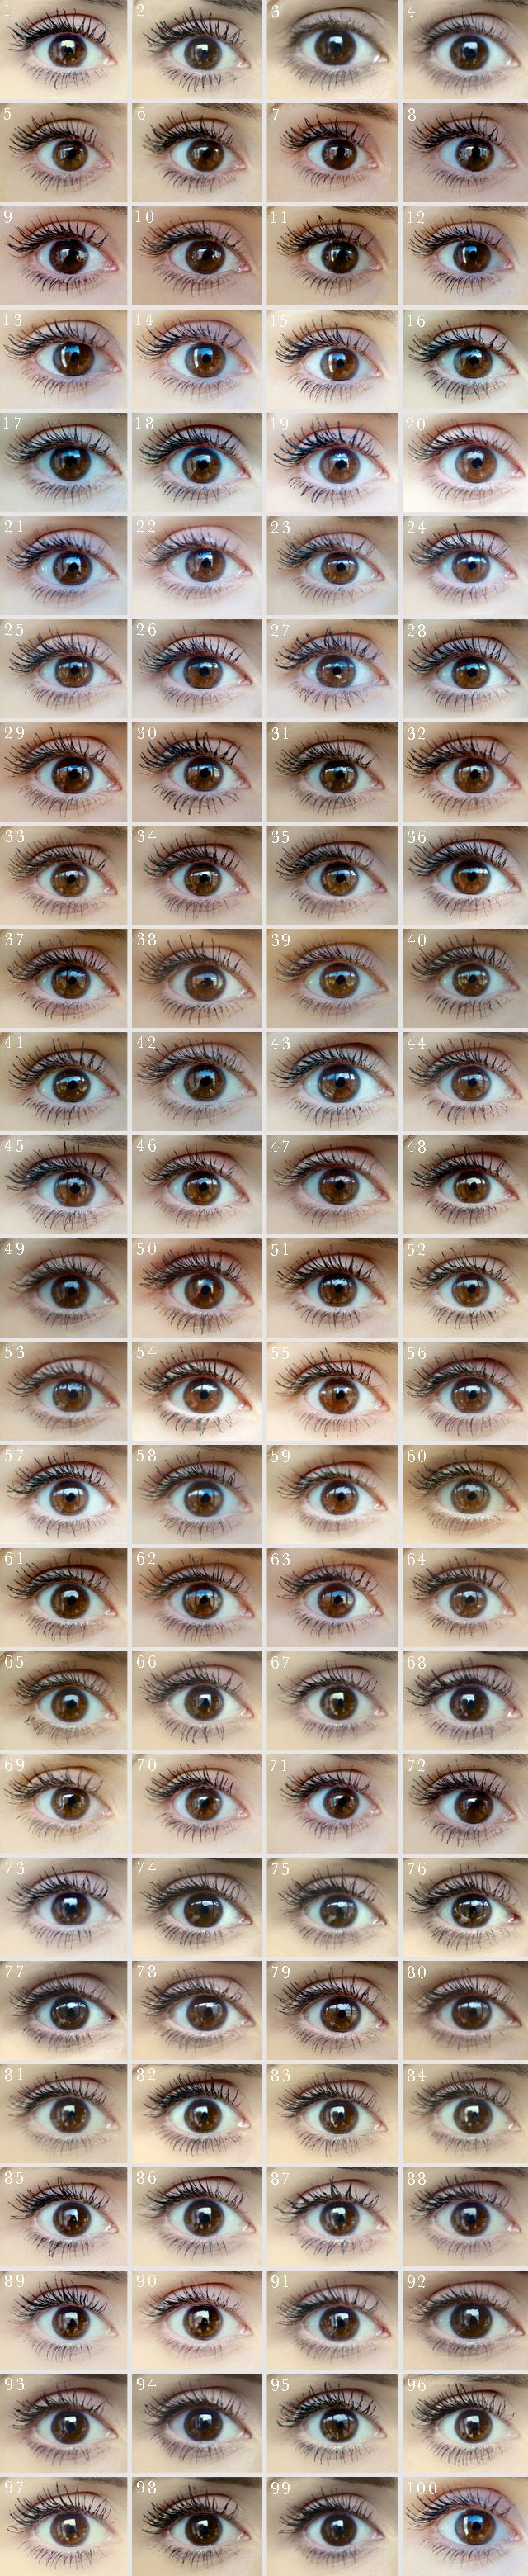 MASCARA :: DAYYYYUMMM!!! 100 MASCARAS tested on ONE EYE! For comparison! by Cosmo's Beauty Lab. From what I could tell & for big lashes, L'oreal Paris Volume Million Lashes Mascara (#45) gave the most volume, thickness & length! And it's drugstore/cheap! Maybelline's The Falsies (#25) & Dior Show (#29) weren't bad, either.